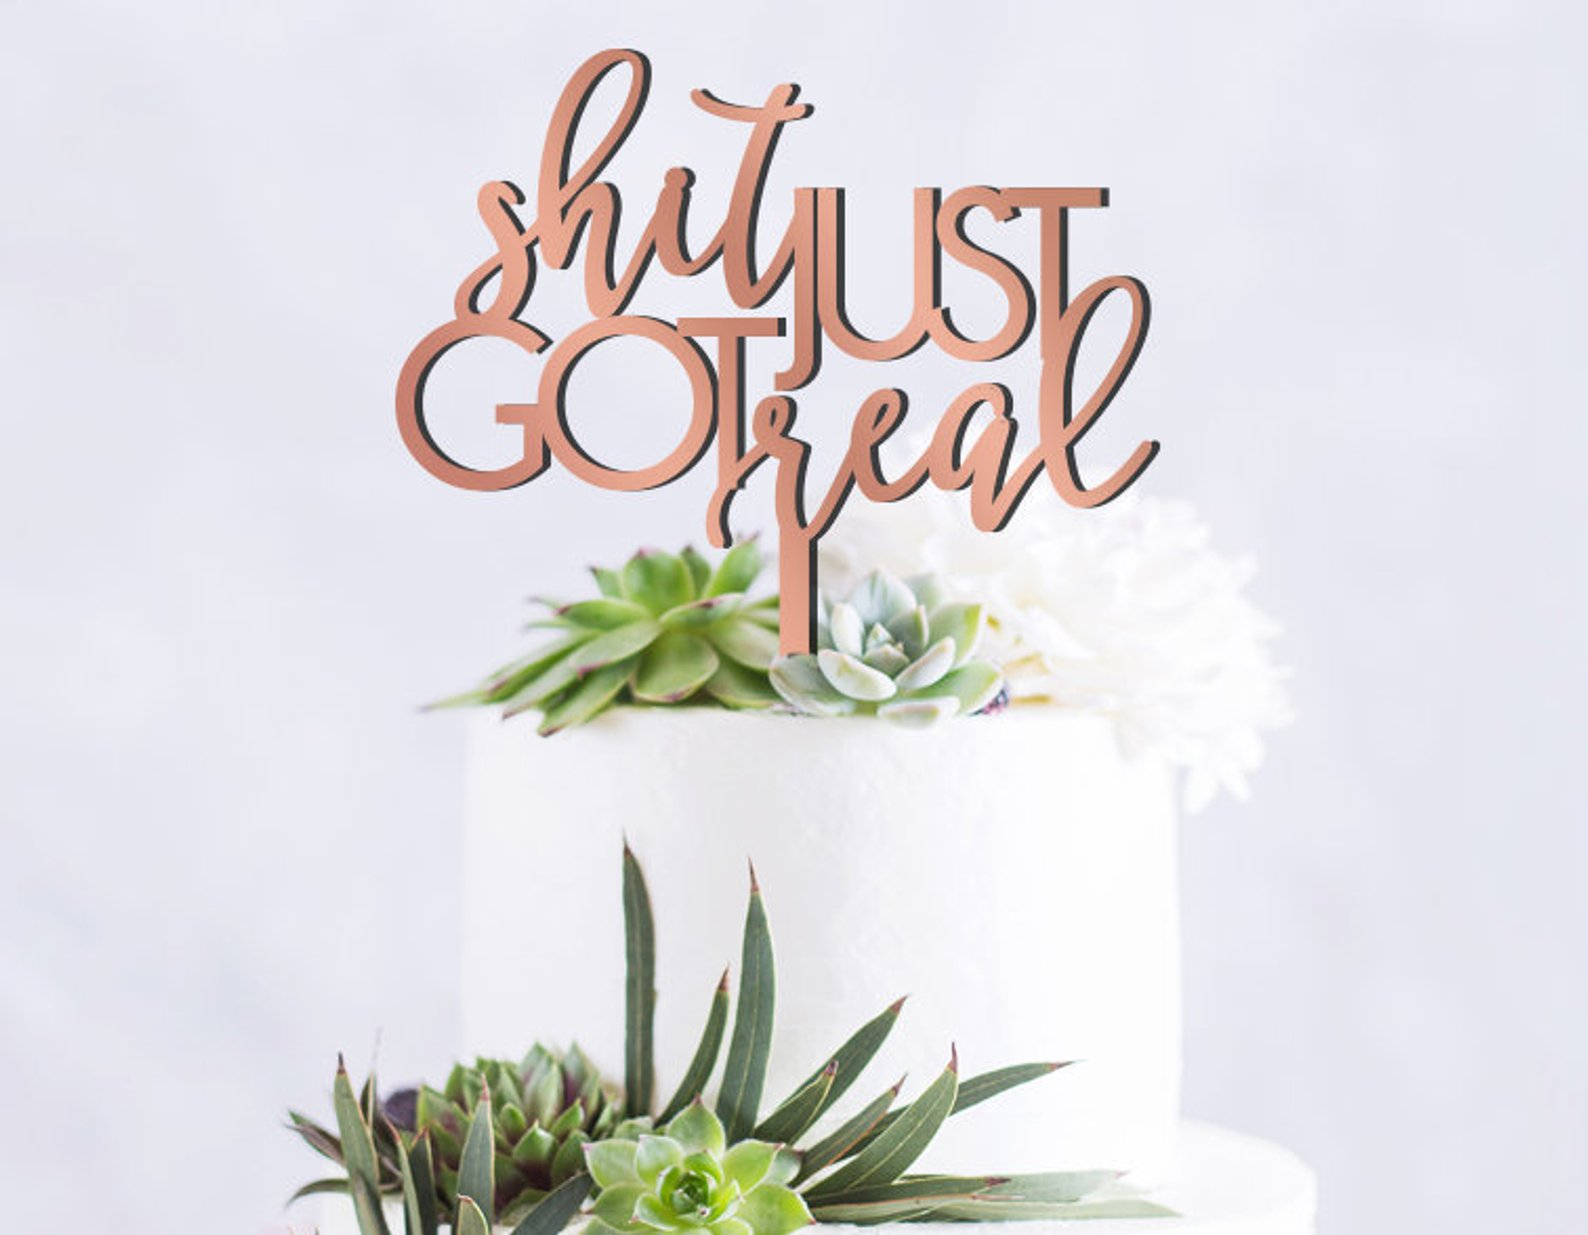 6. Just Got Real Cake Topper - Make all your guests laugh with this profane and to the point cake topper.